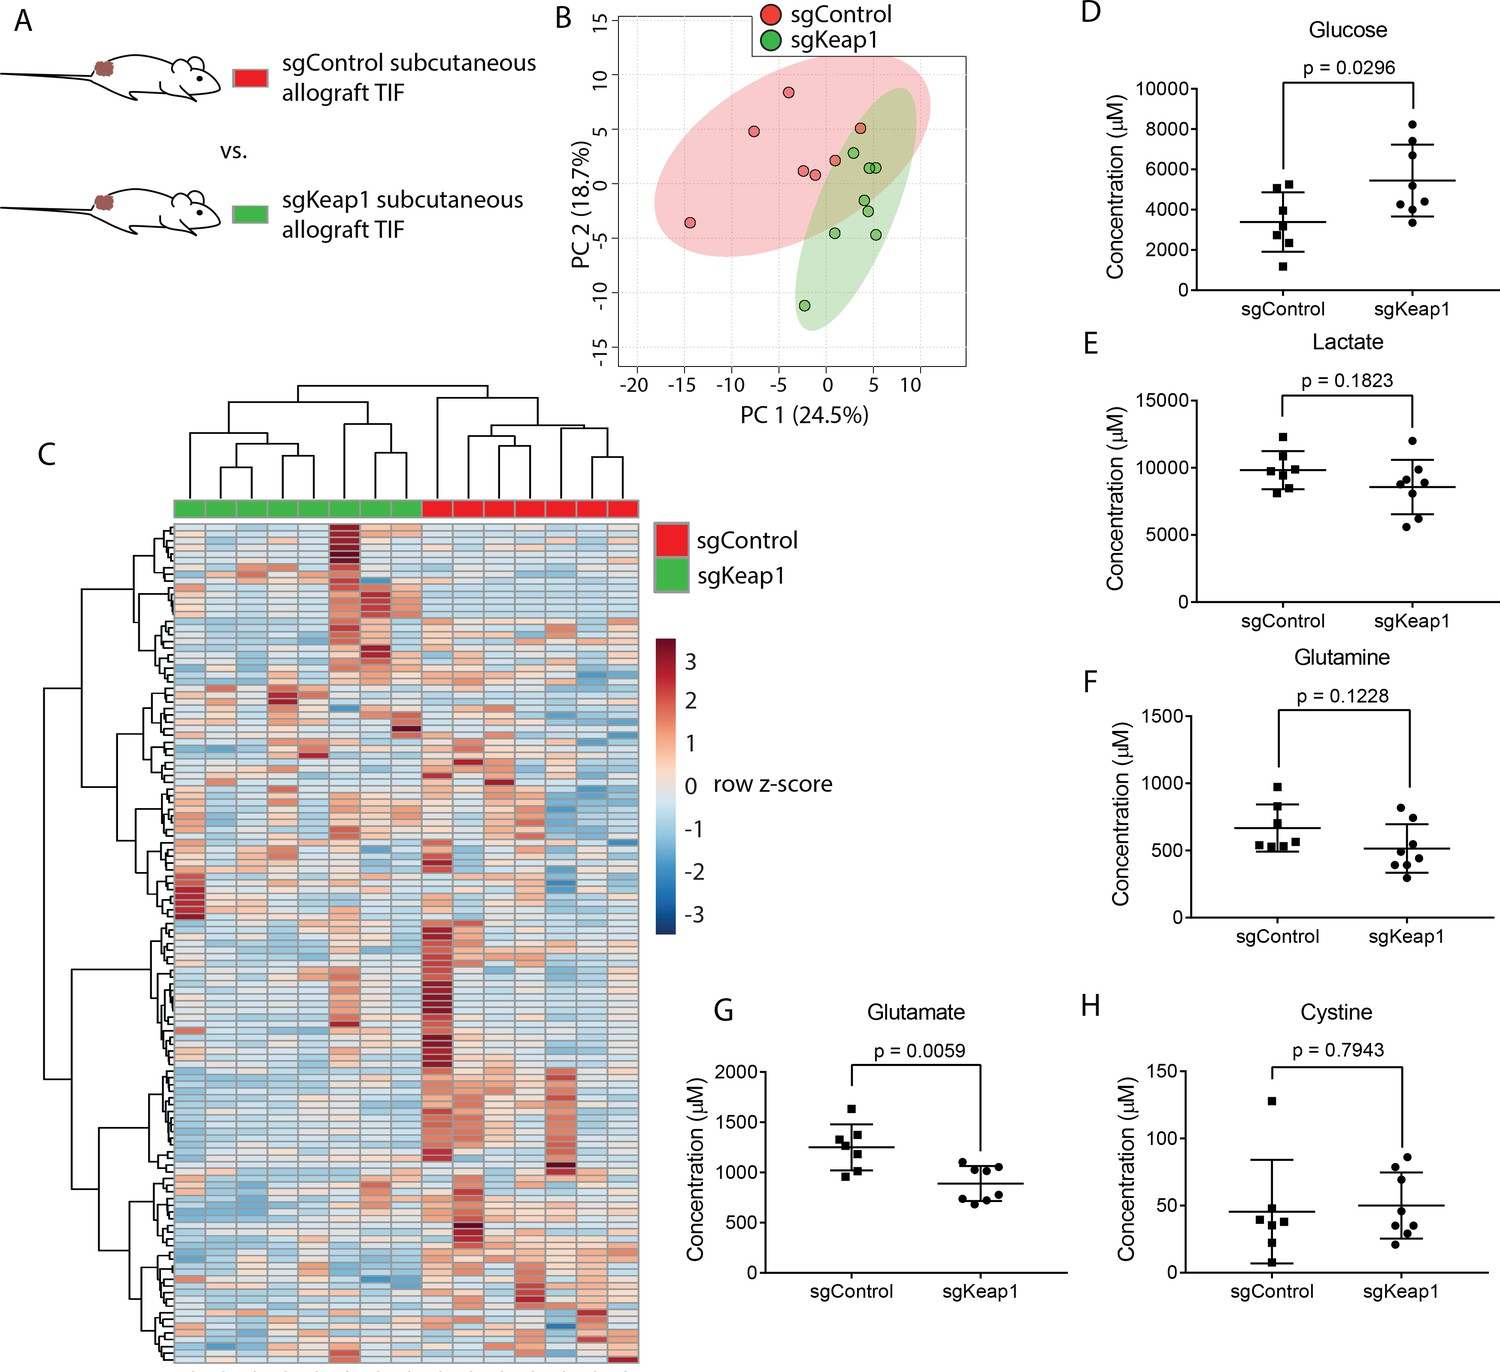 Quantification of microenvironmental metabolites in murine cancers